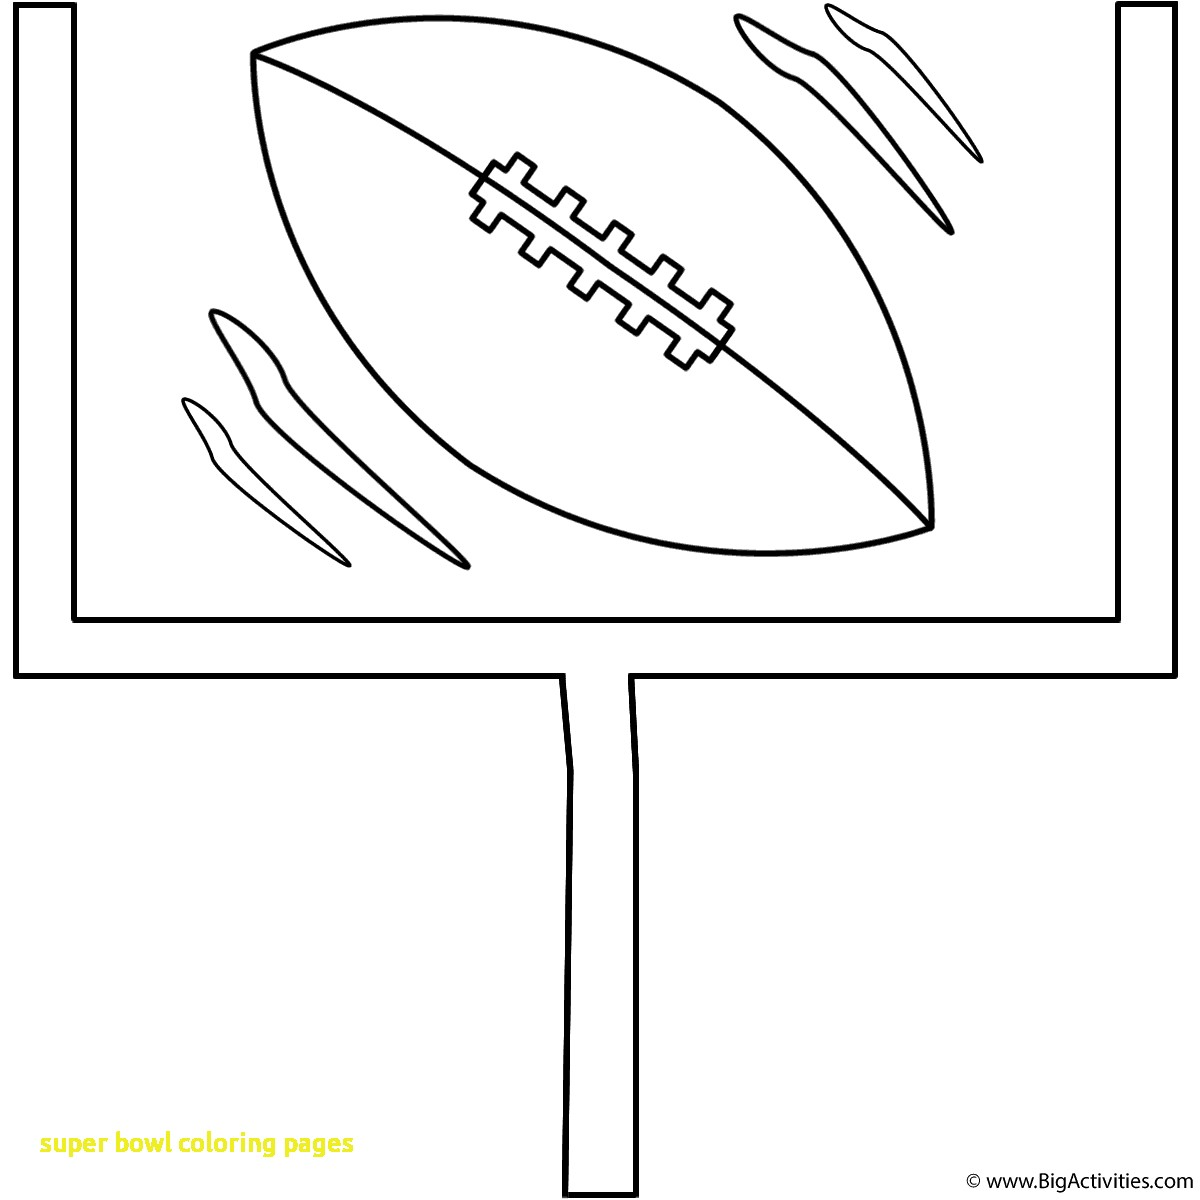 super bowl coloring pages at getdrawings free for personal use HR Diagram Colors 1200x1200 super bowl coloring pages with football with goal post coloring